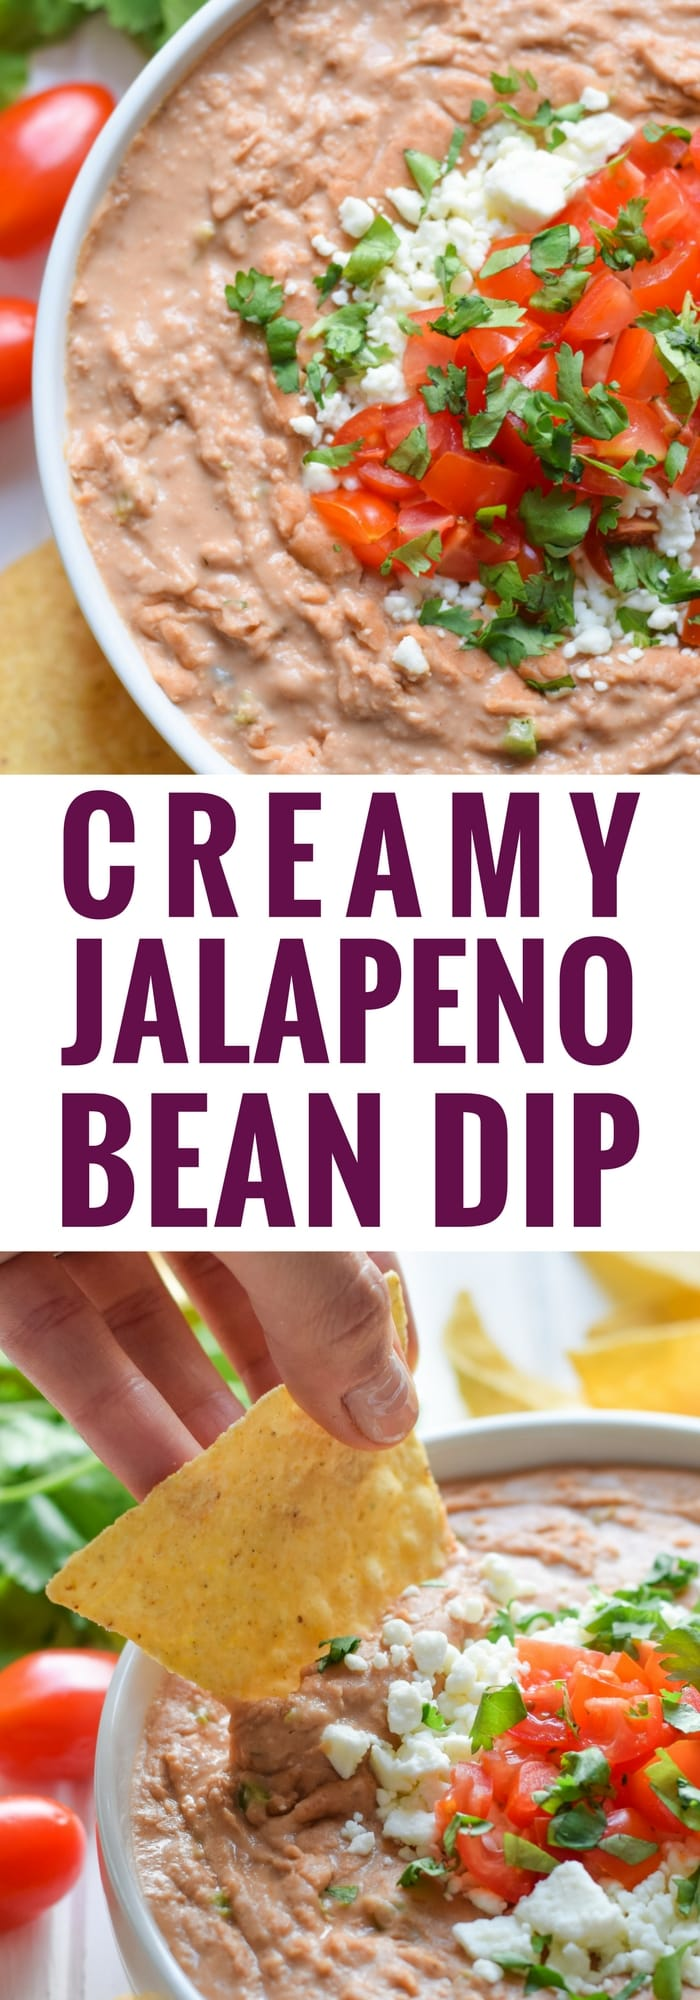 Mixed with diced jalapeños and Mexican spices like cumin and oregano, this Creamy Jalapeno Bean Dip is easy to make and is the perfect appetizer or snack any day of the week.